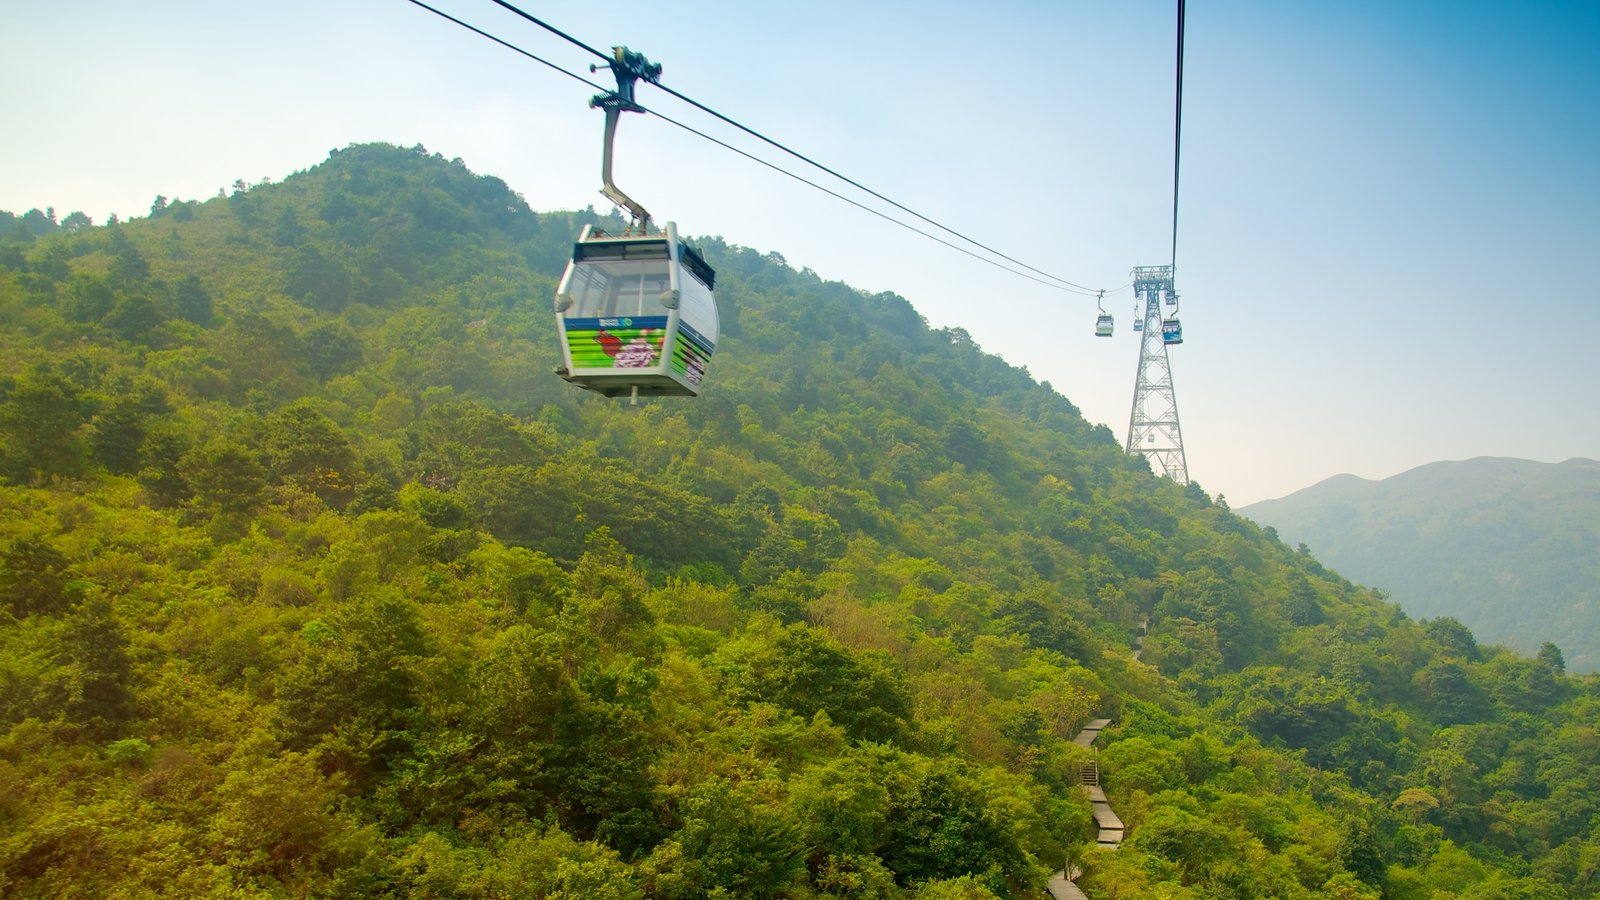 Ngong Ping 360 which includes forests and a gondola